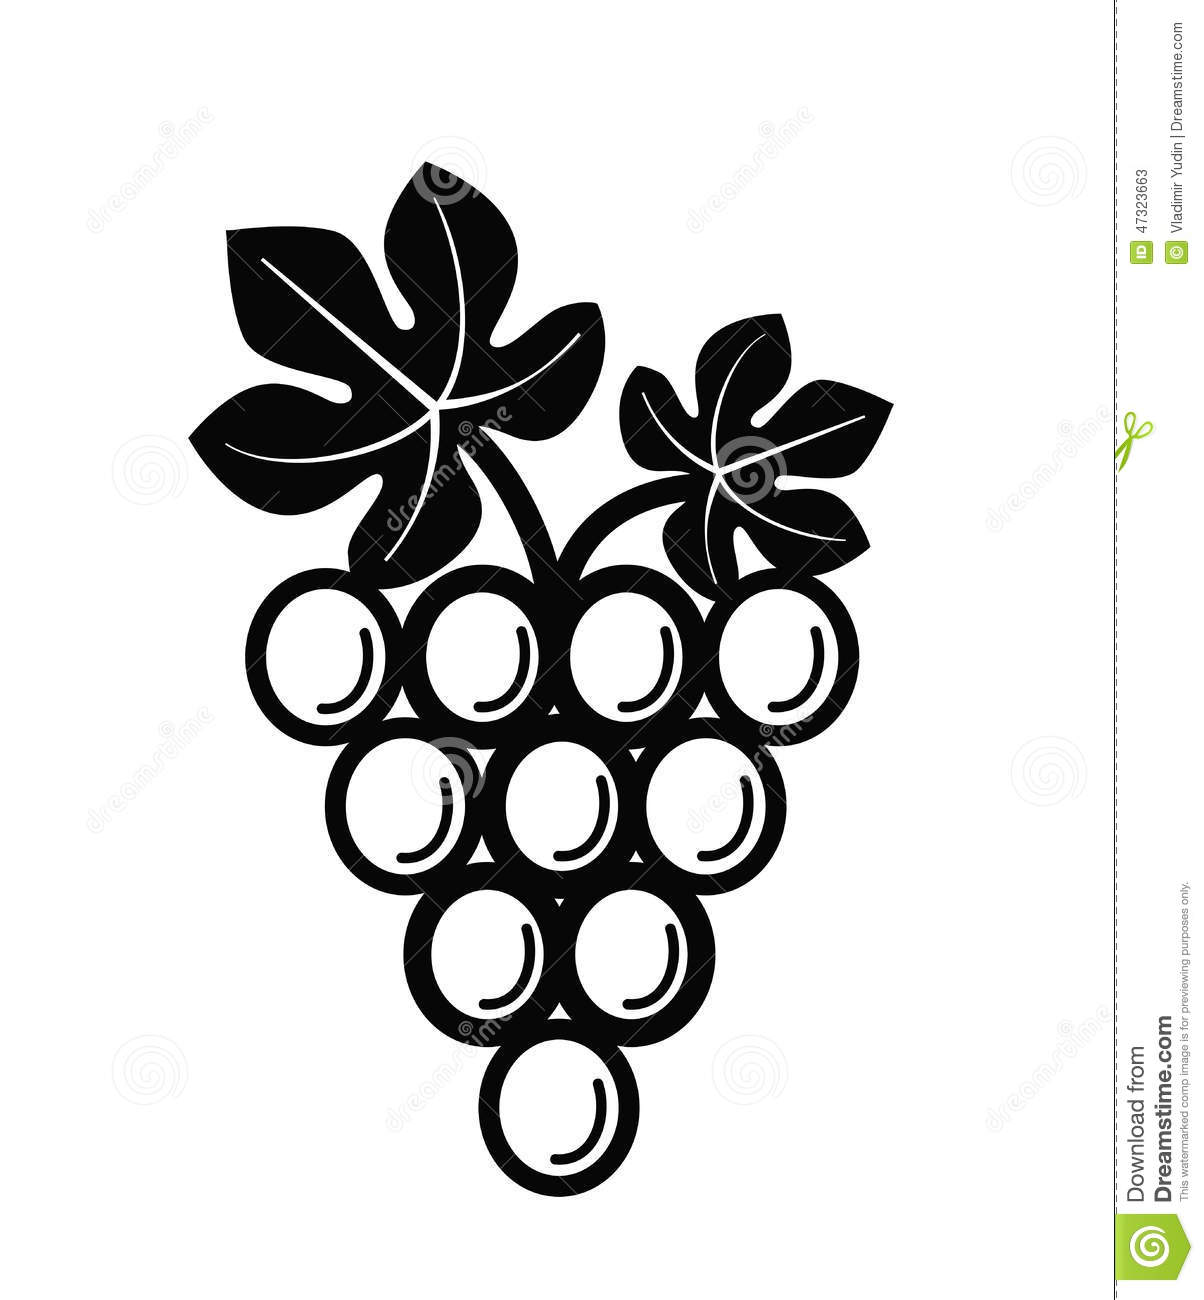 Vector black illustration of grapes on white.